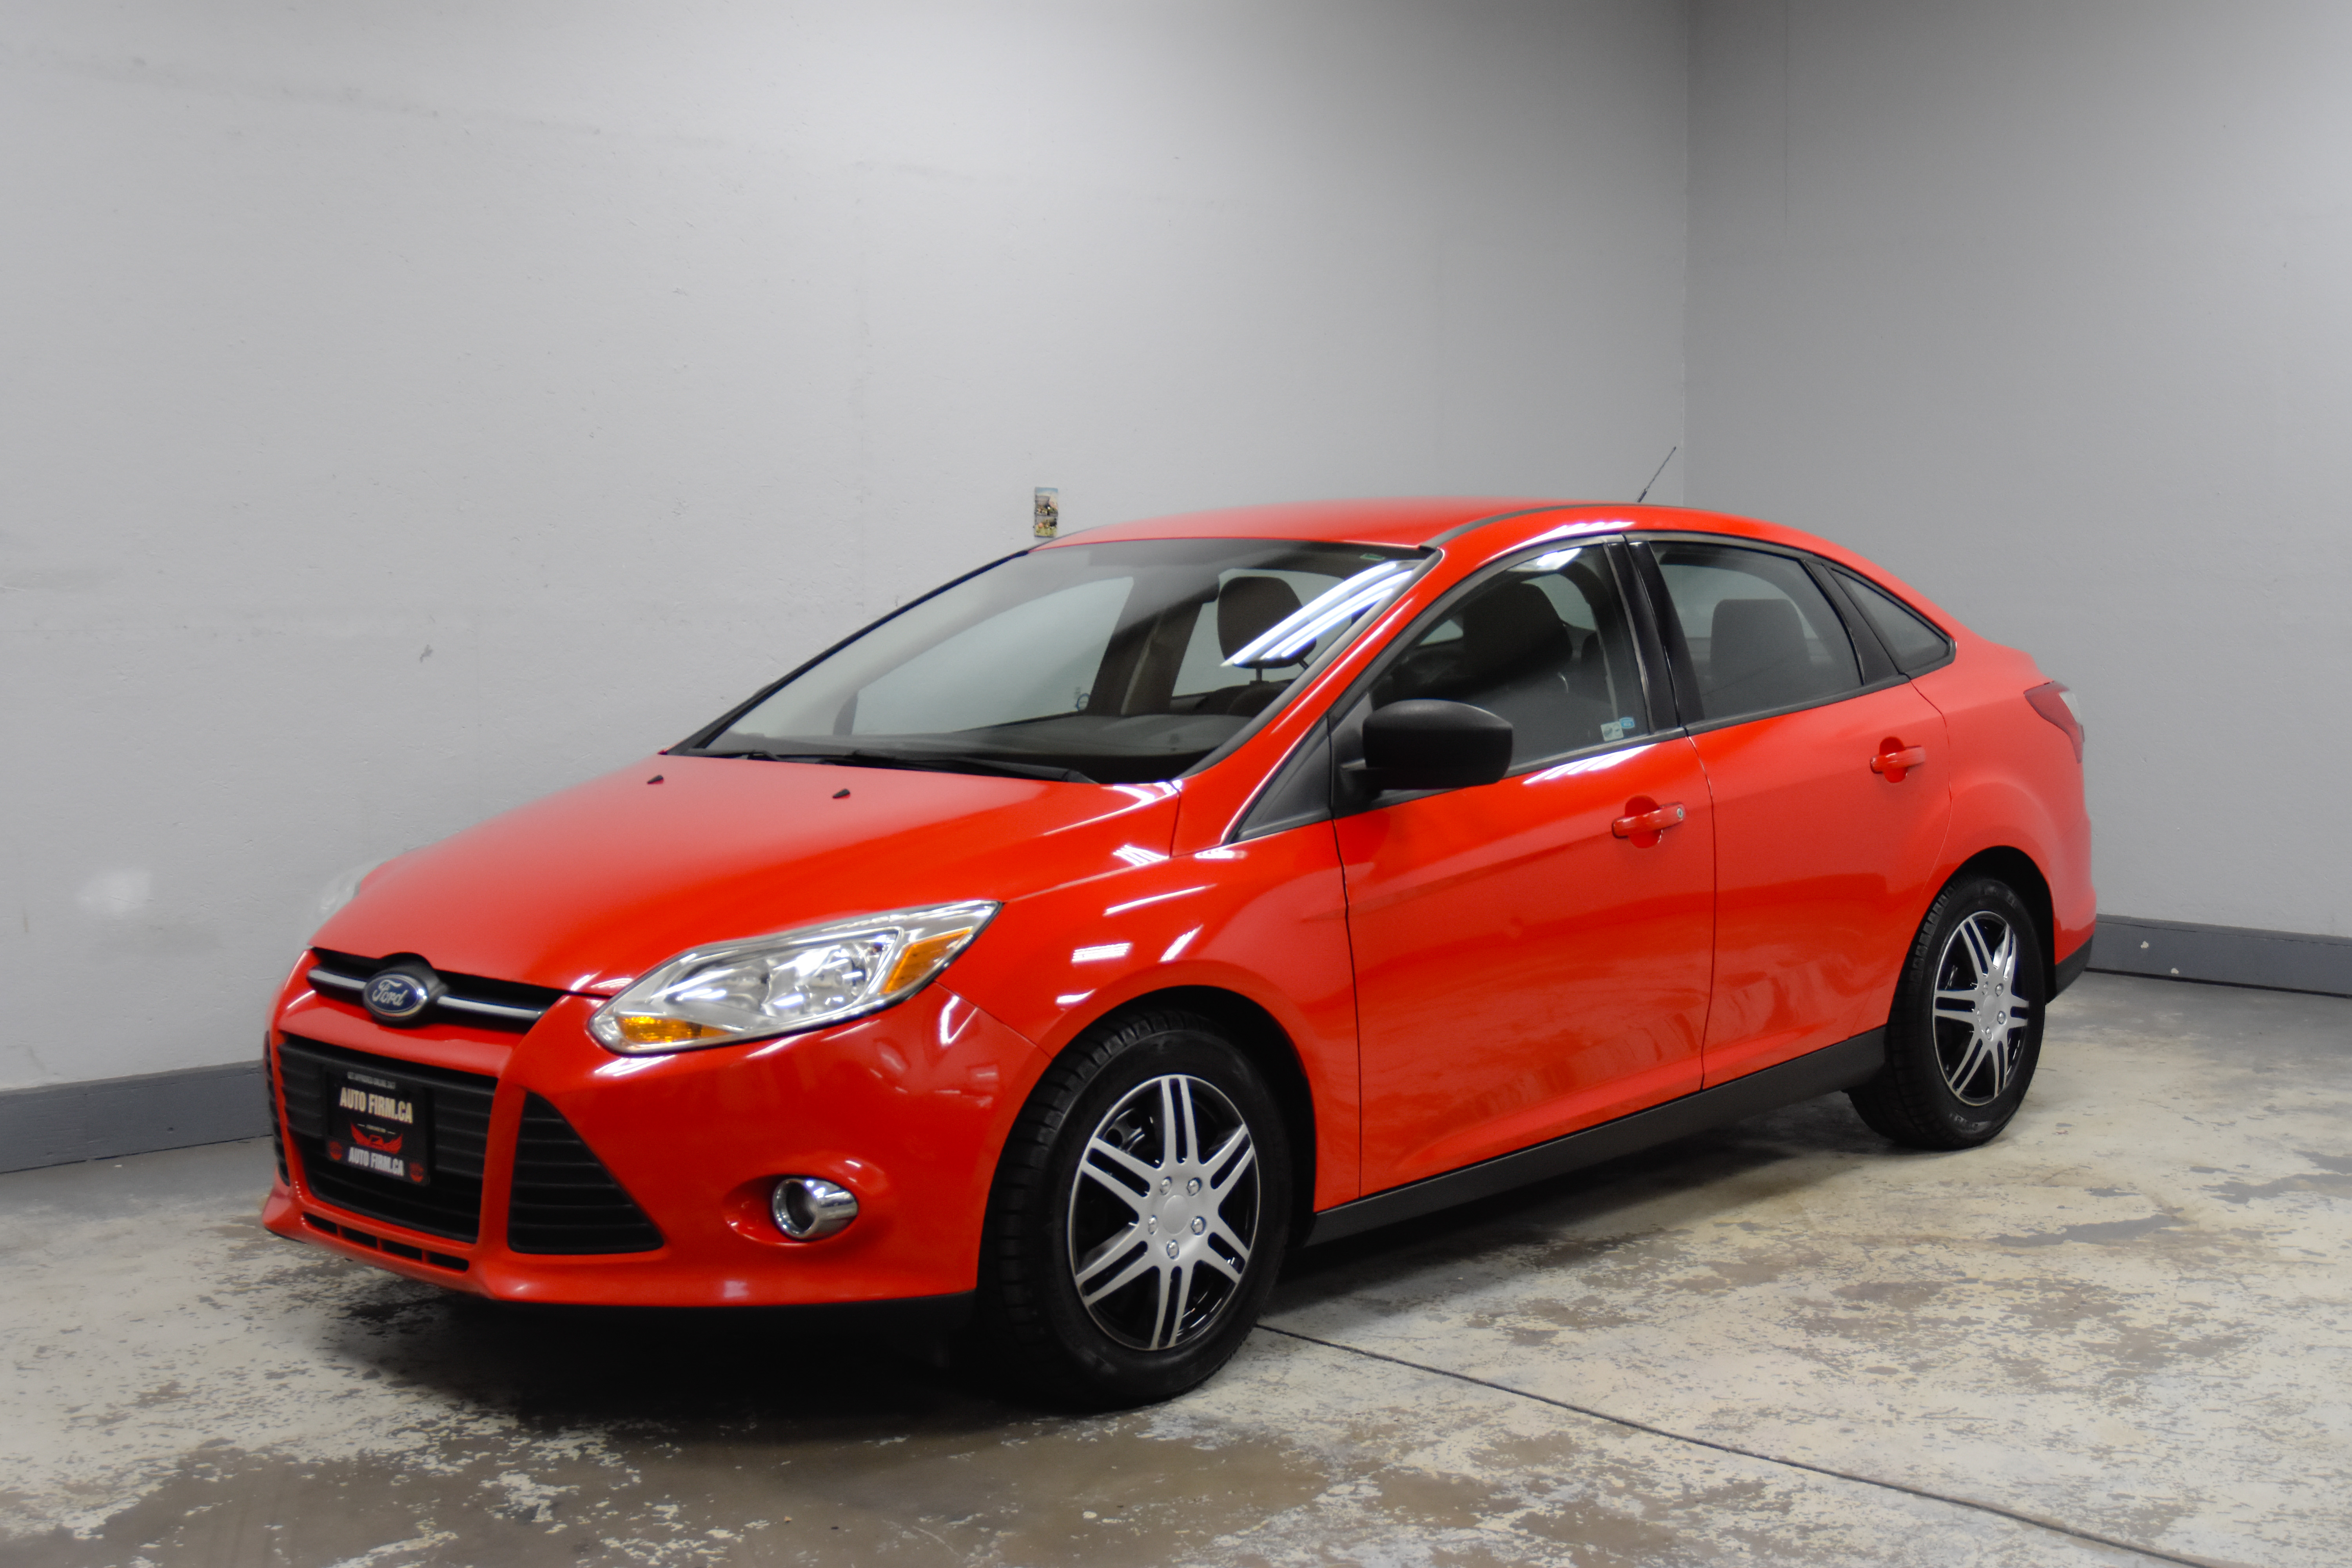 2012 Ford Focus Main